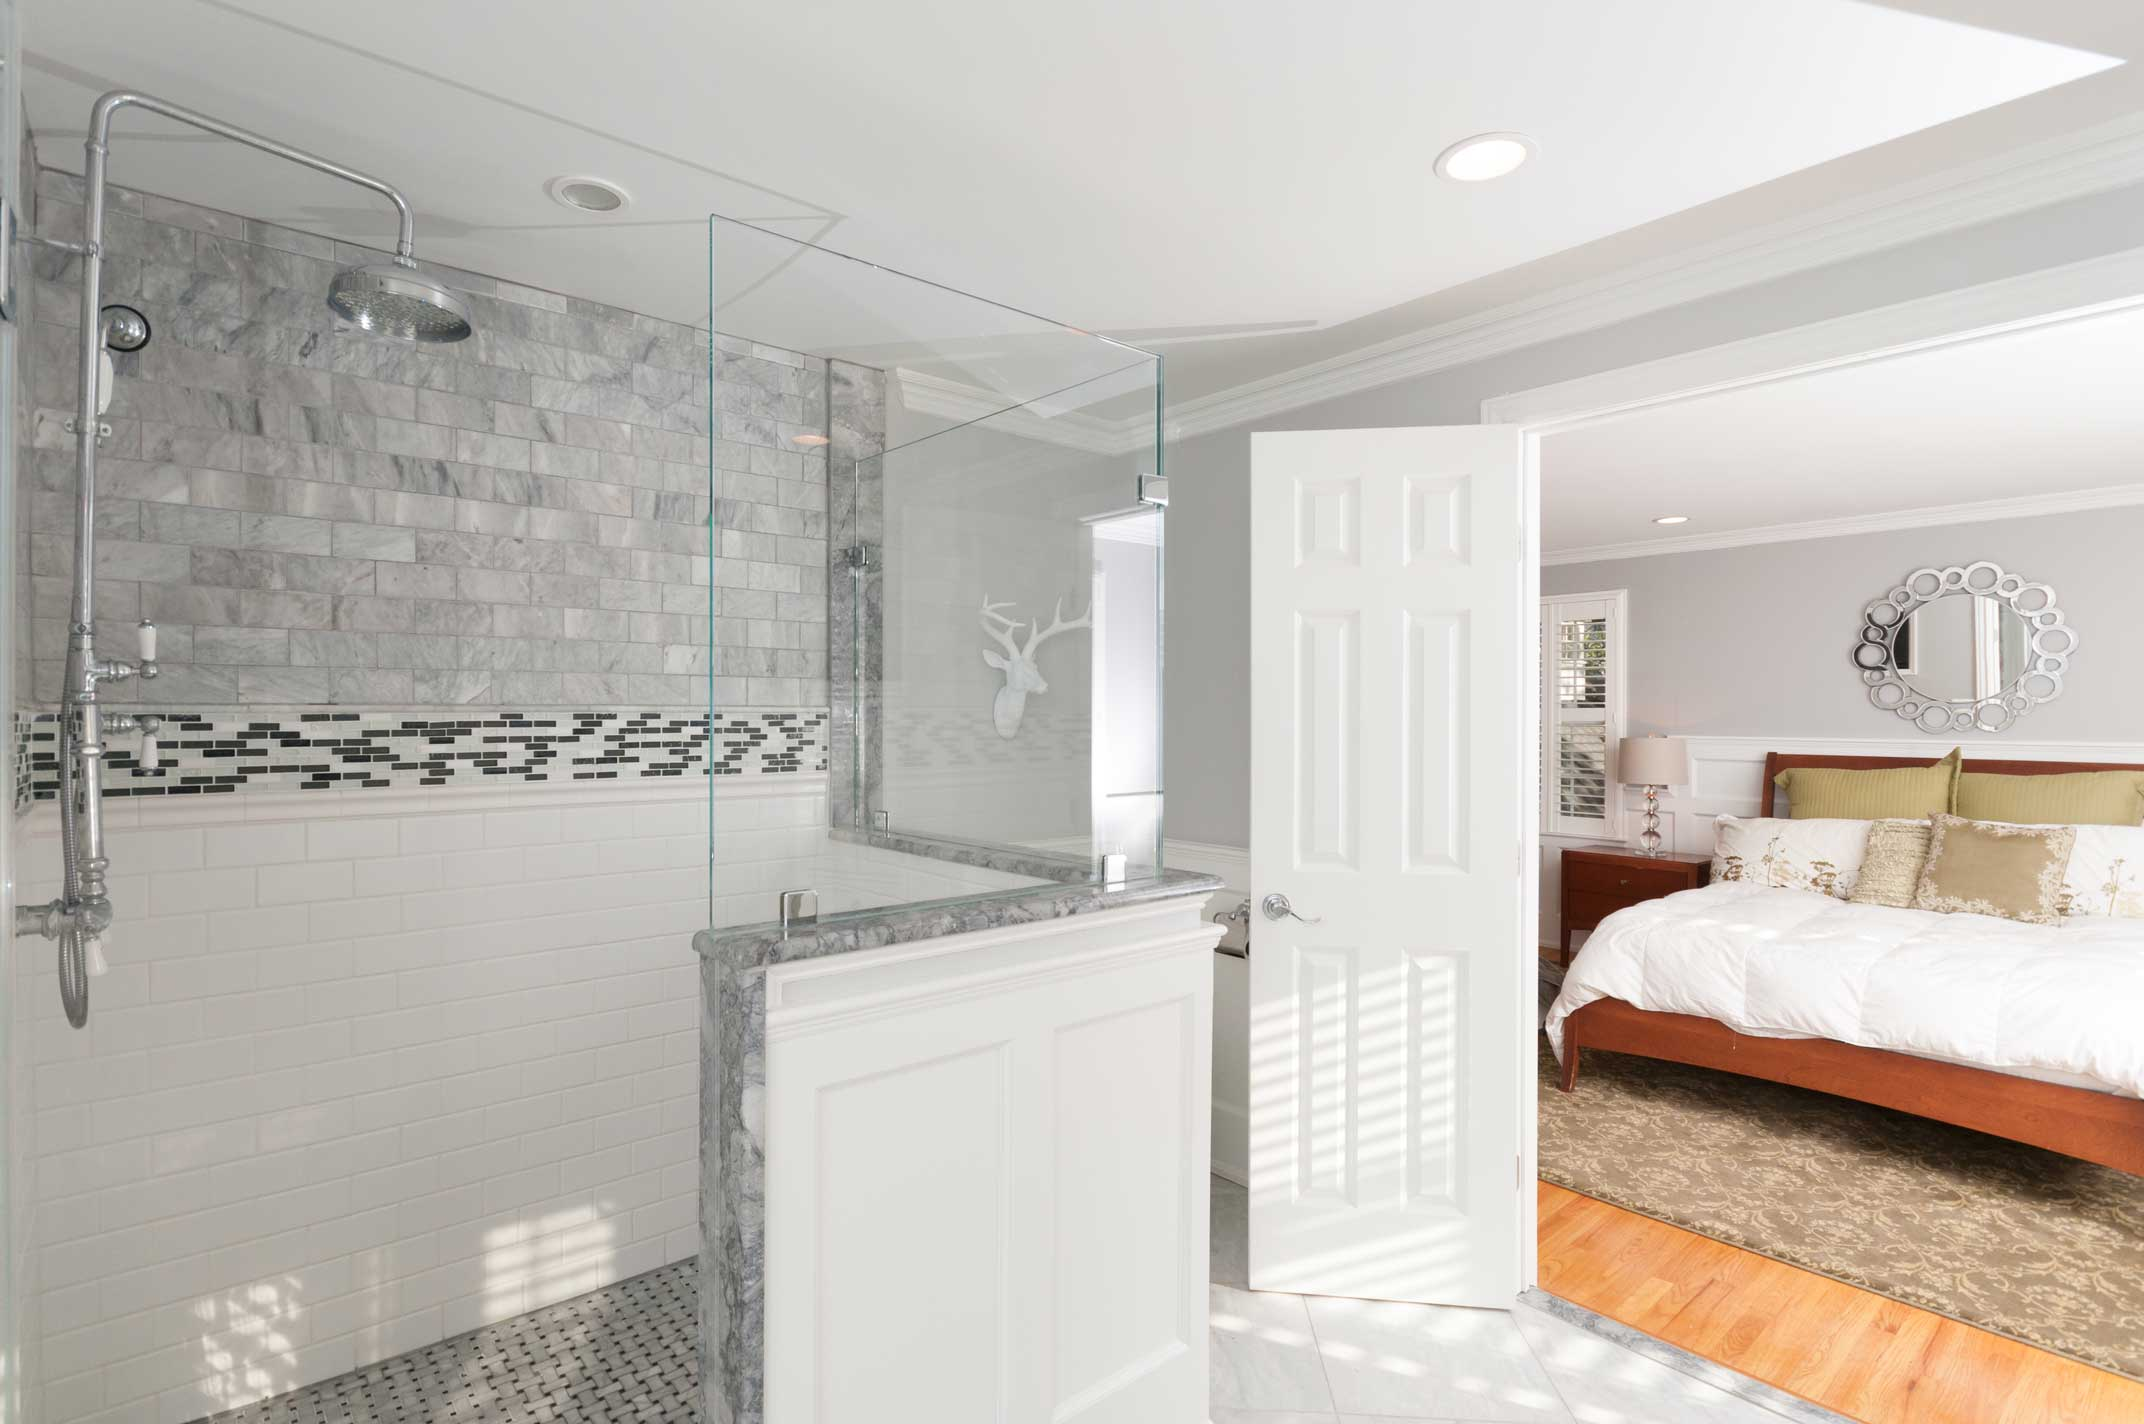 Real Estate Photography - Bathrooms in Cherry Hill New Jersey by Emanuel Mozes Photography